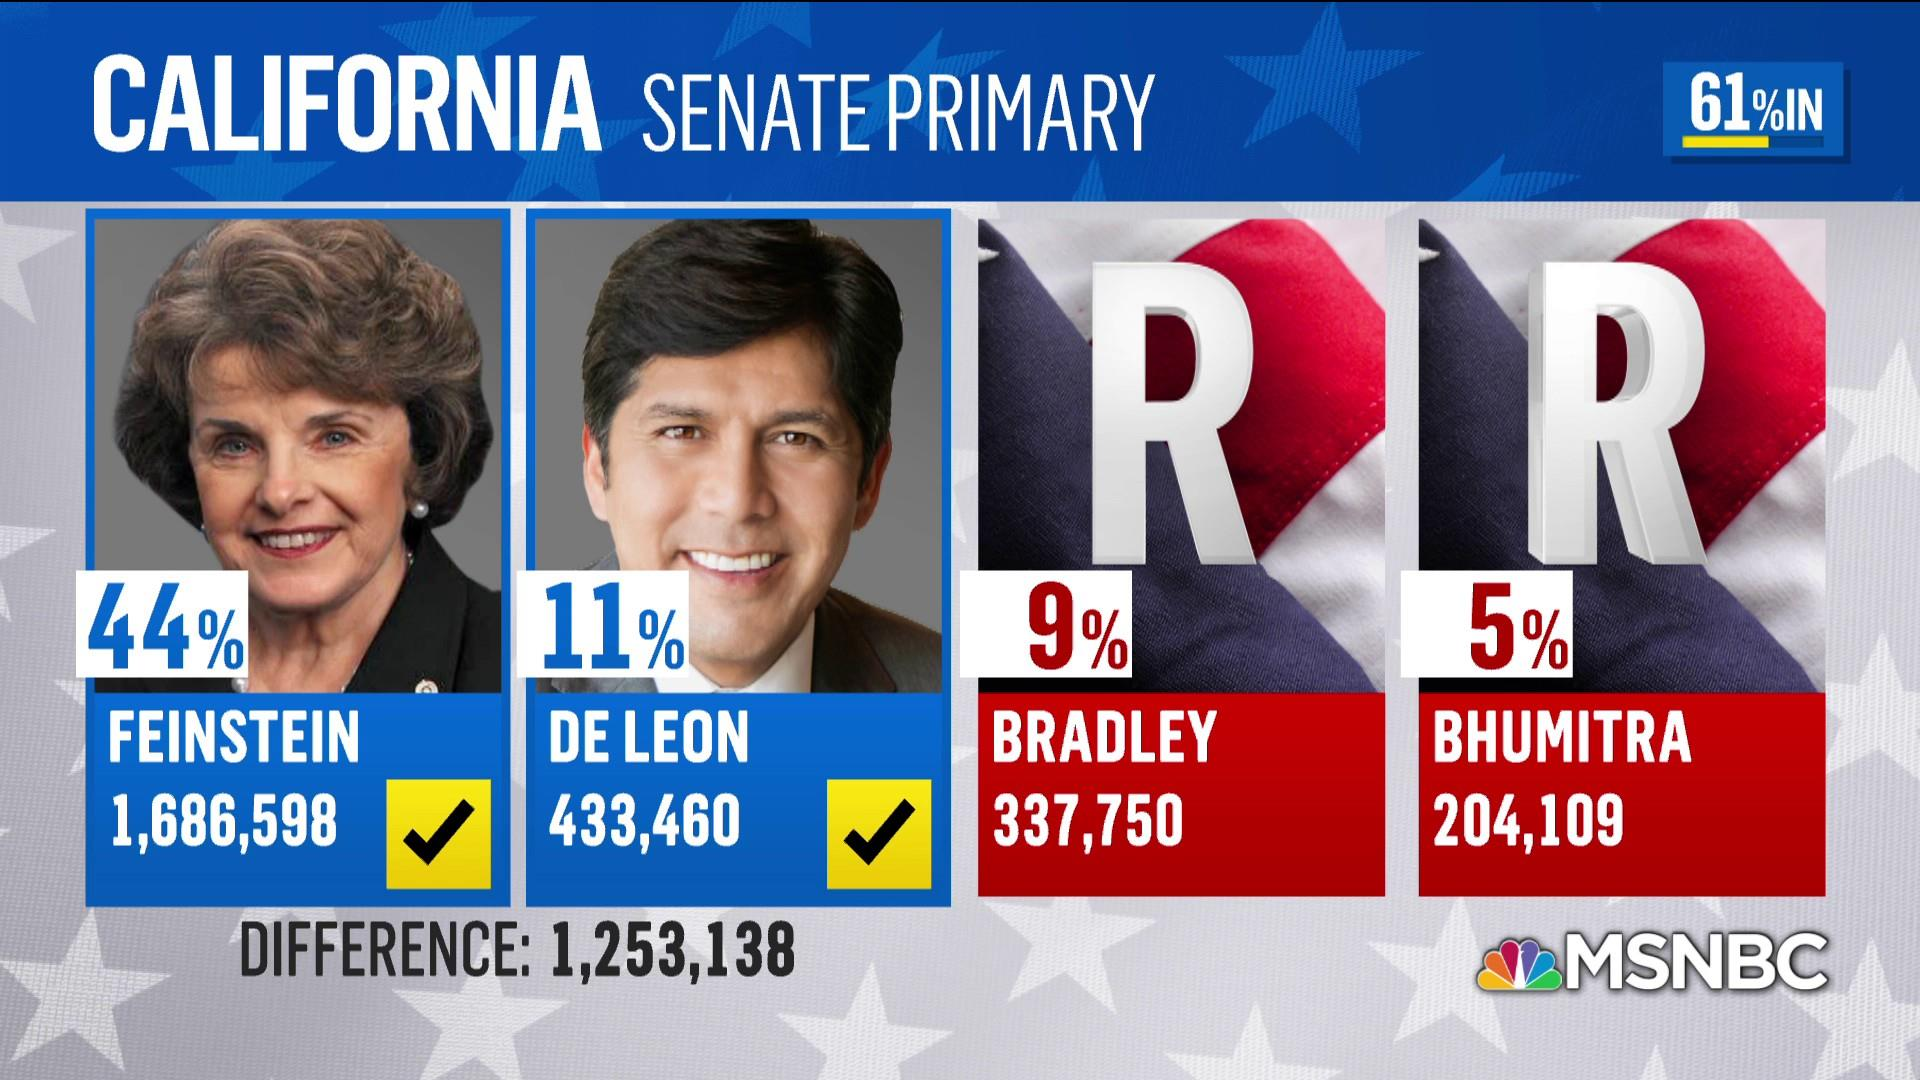 GOP gets wiped out in California senate race